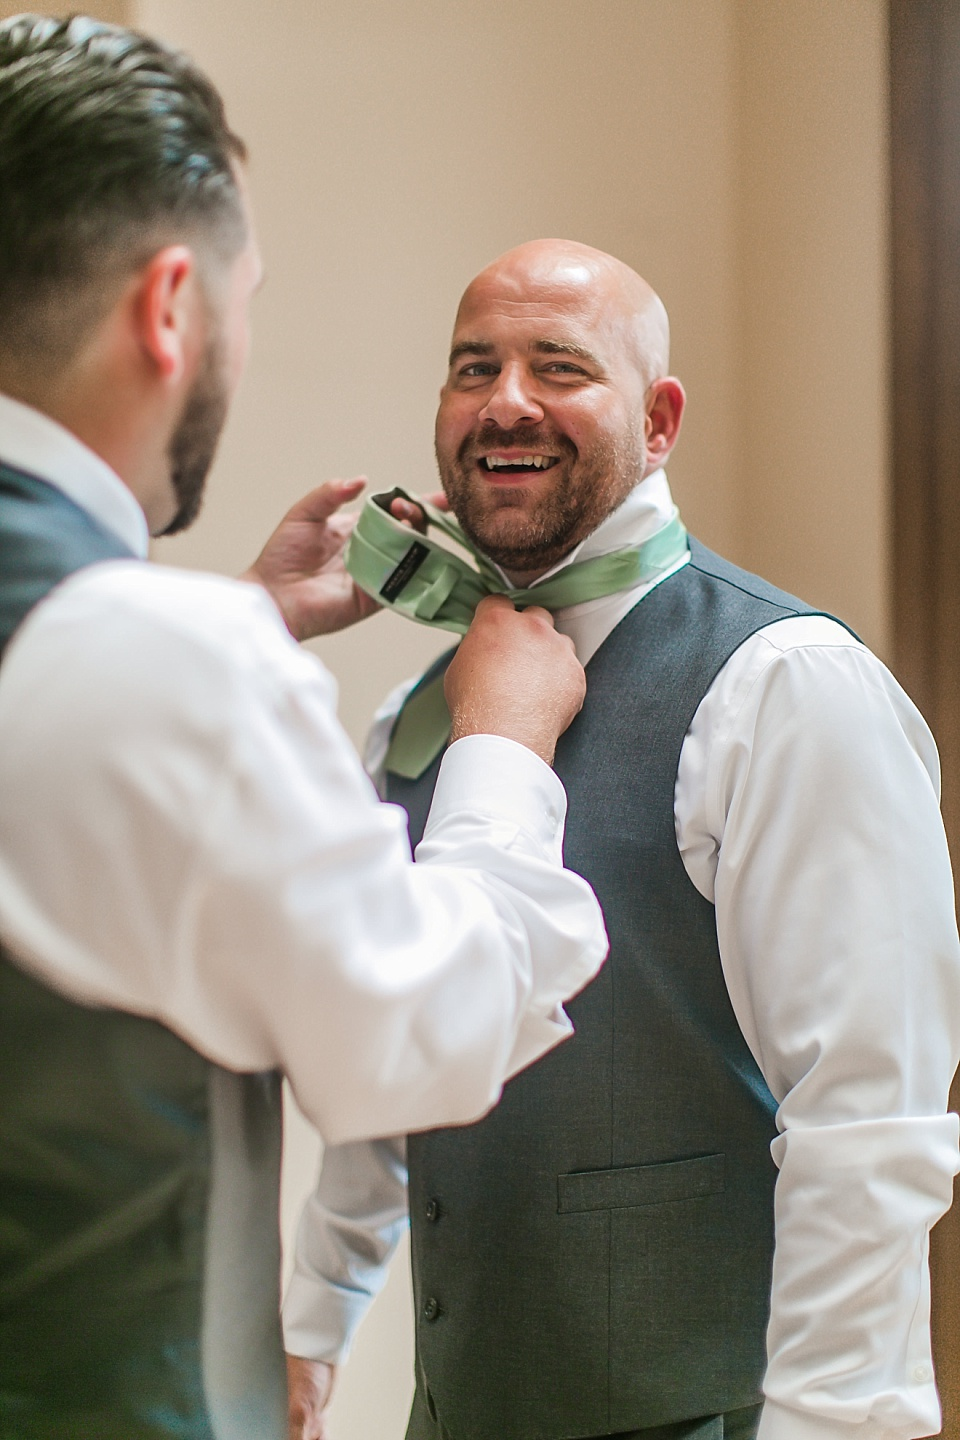 groom getting assistance with tie before the wedding la jolla wedding photography